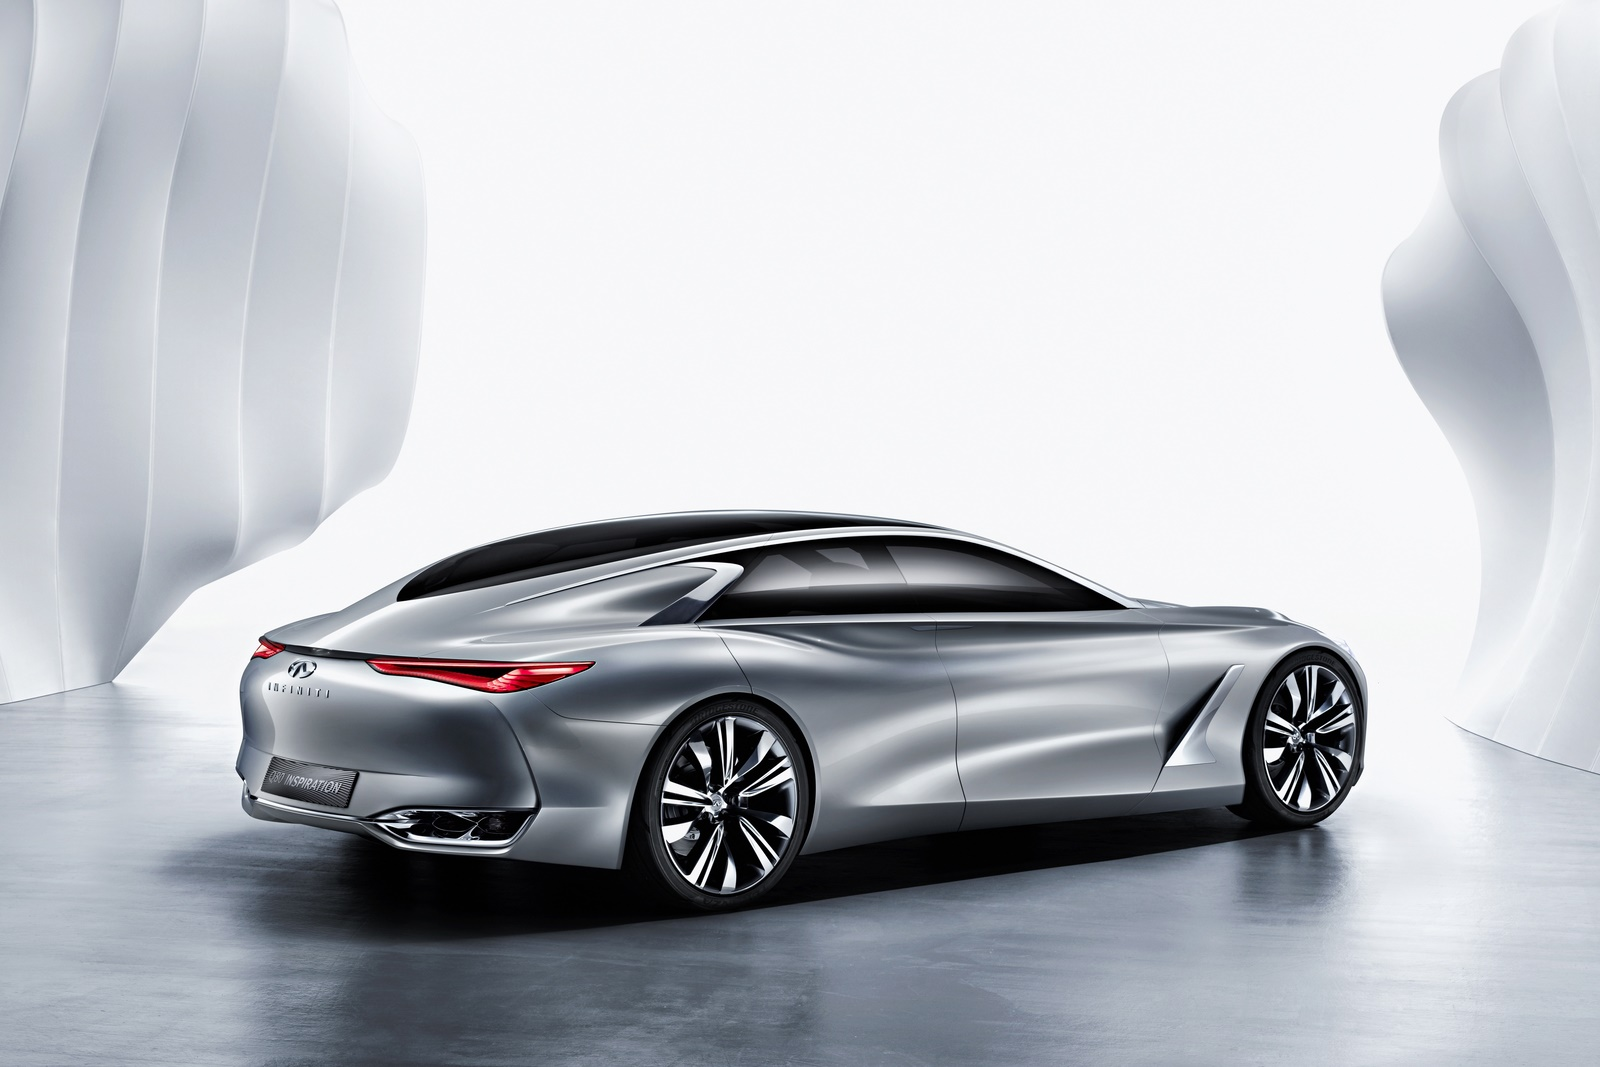 2019 Infiniti Coupe Concept photo - 1